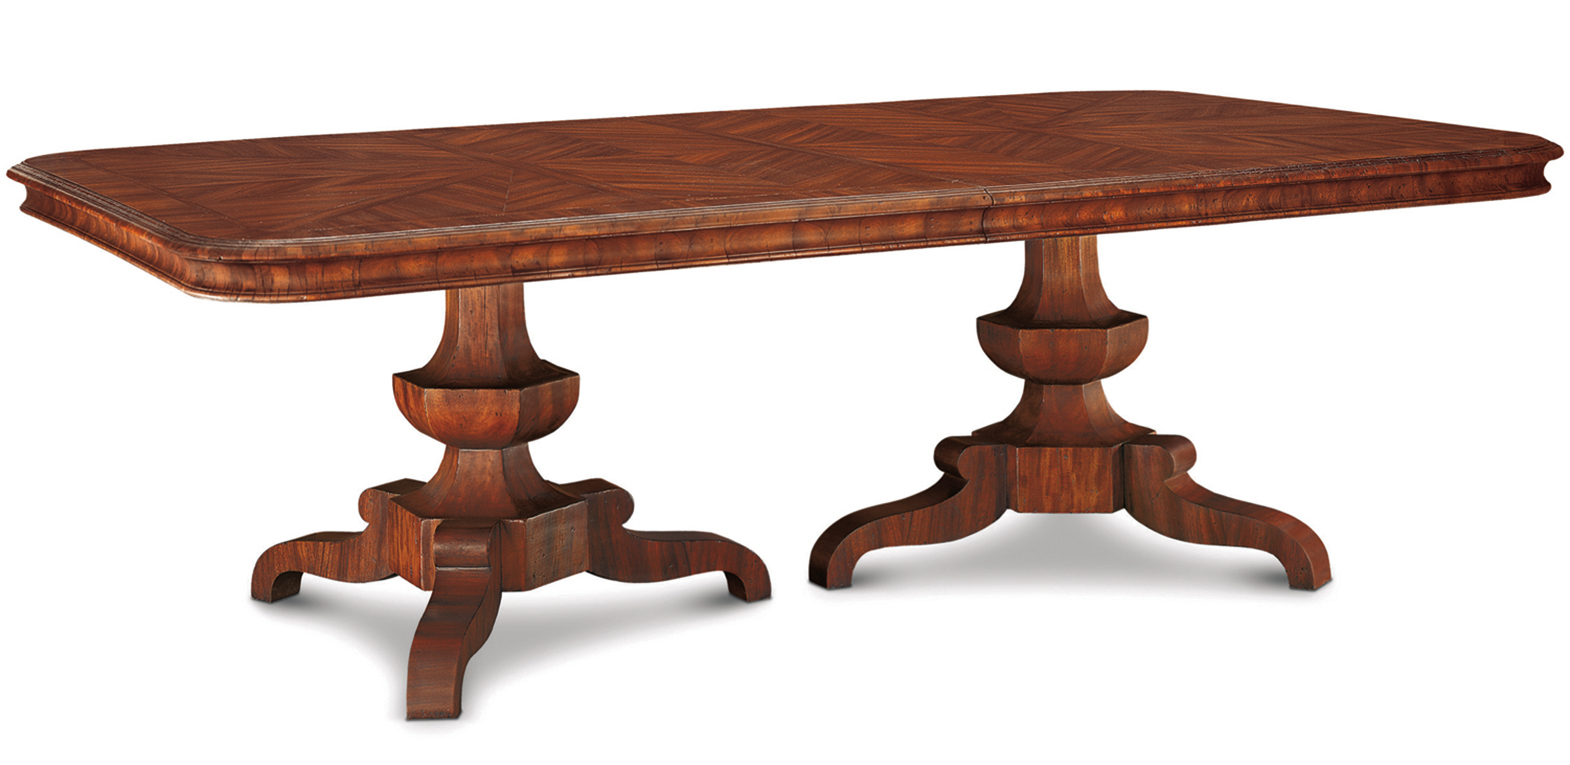 PALAFOXIANA RECTANGULAR DINING TABLE